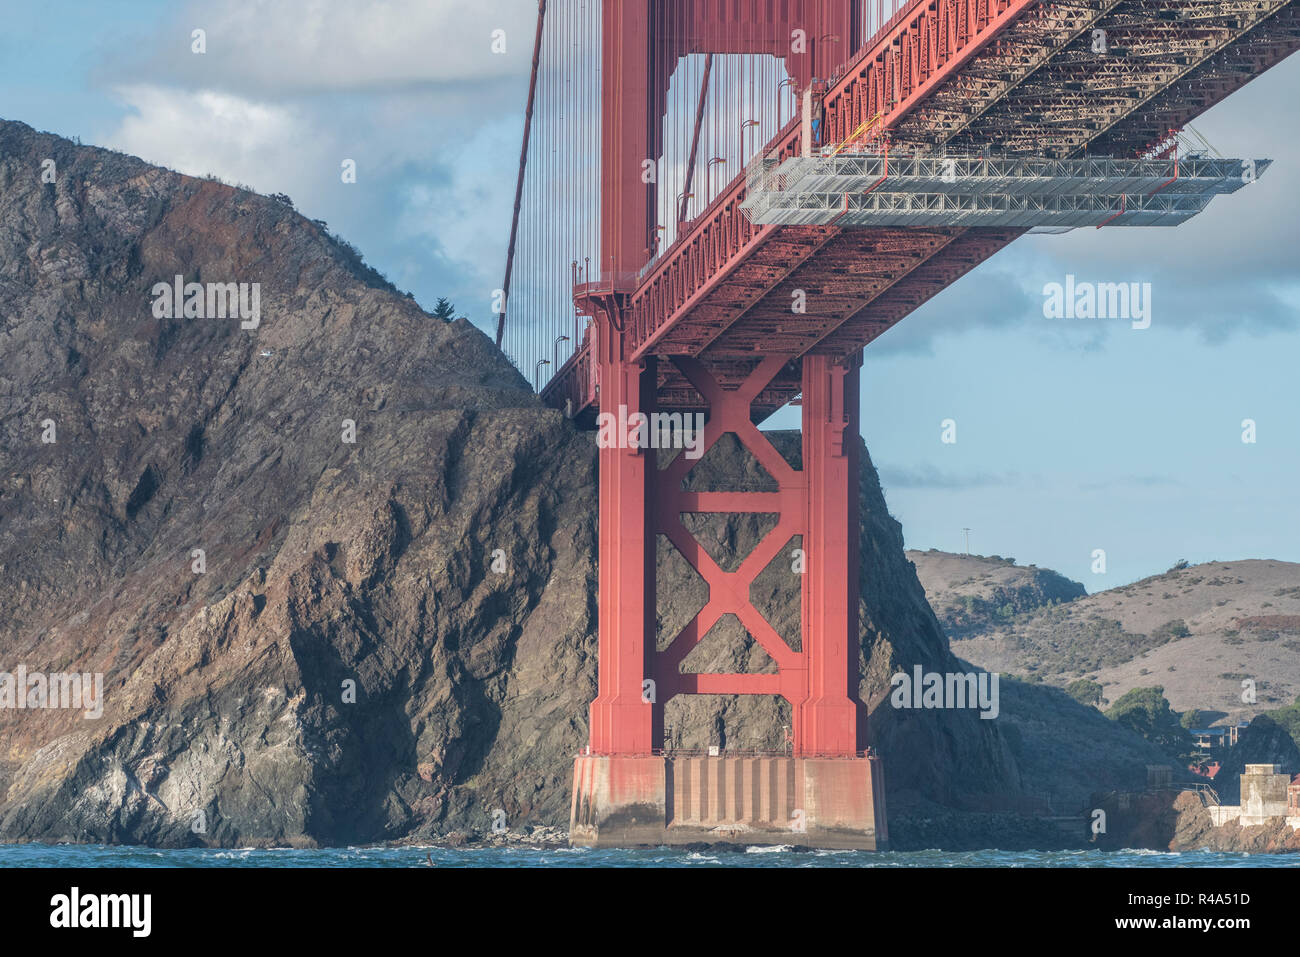 The famous golden gate bridge photographed from a different angle, from below in the San Francisco Bay from within a boat. - Stock Image